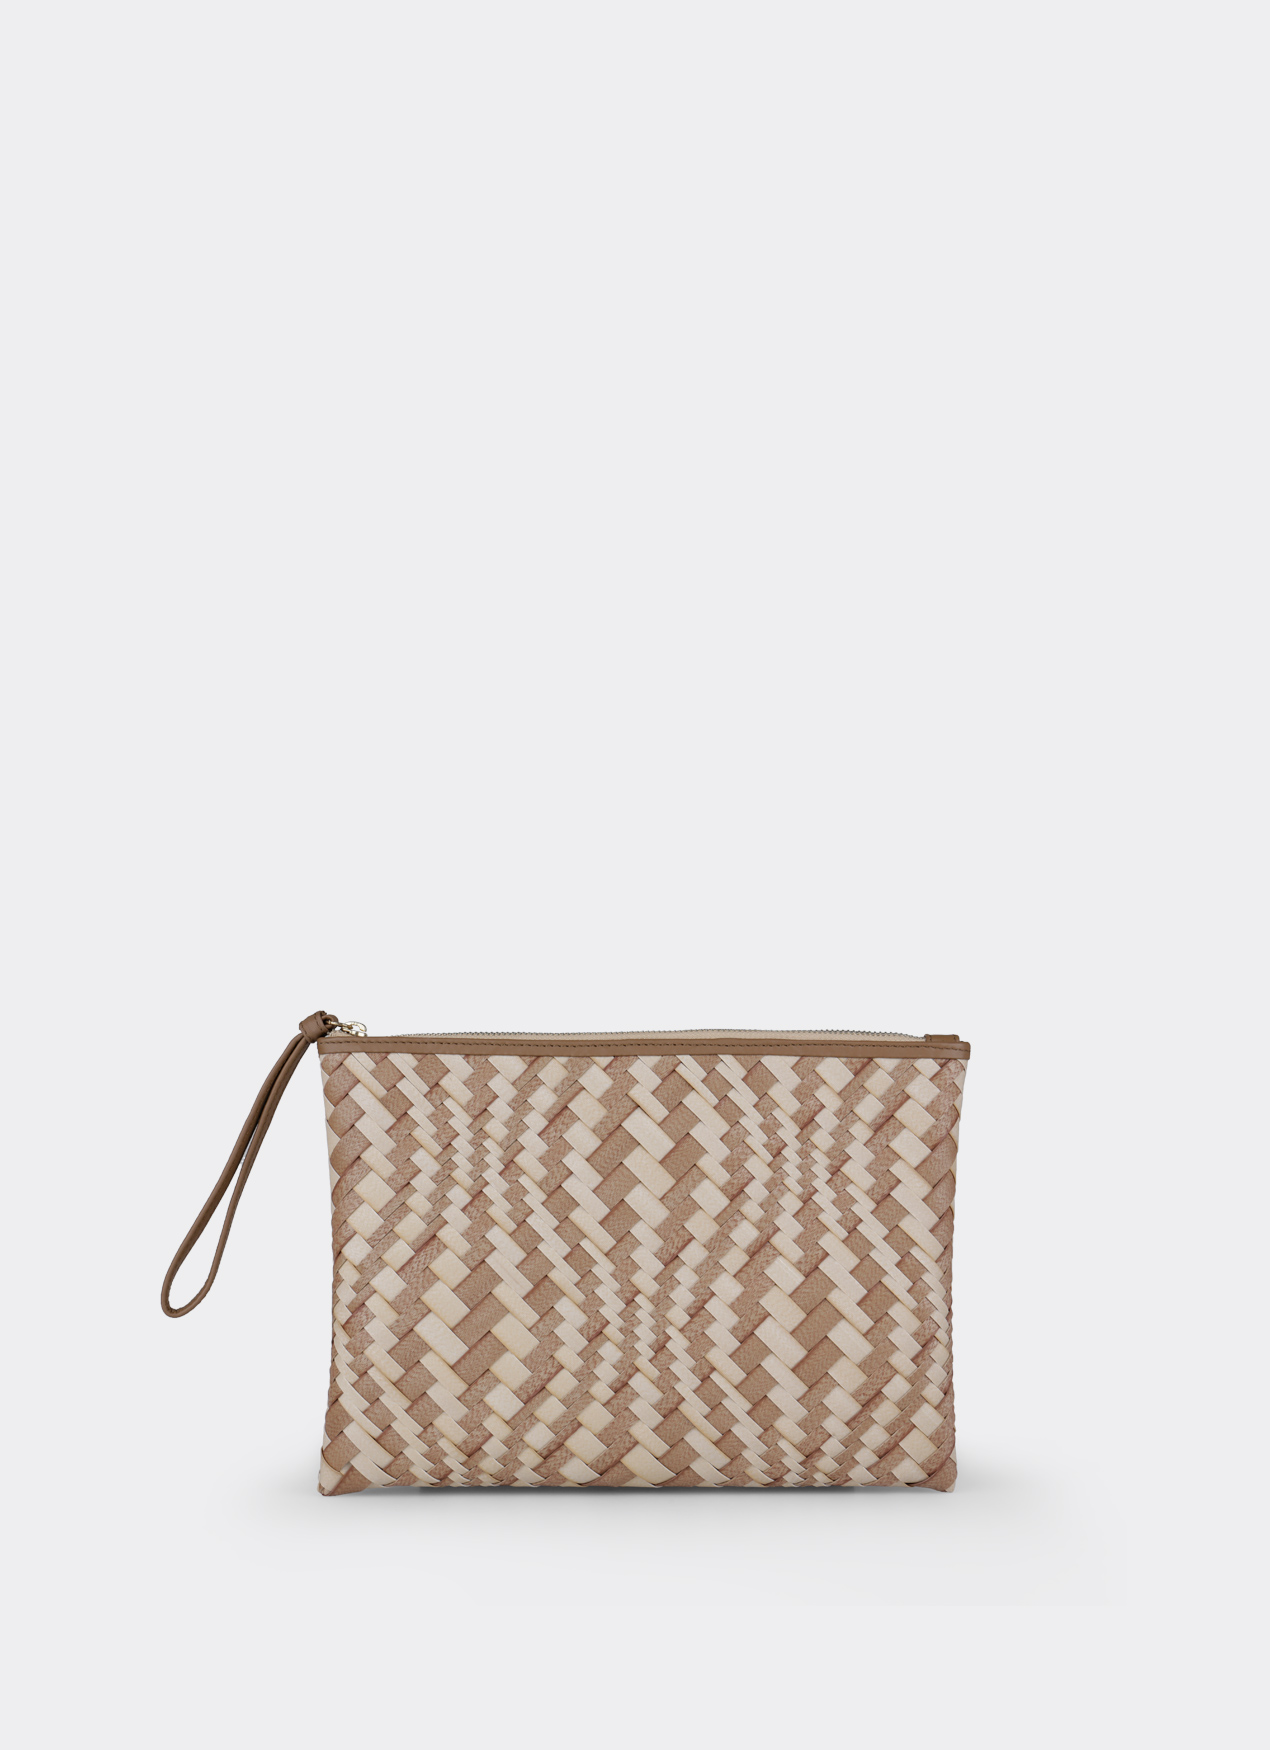 Chameo Couture Piper Clutch Radiance Brown Cream